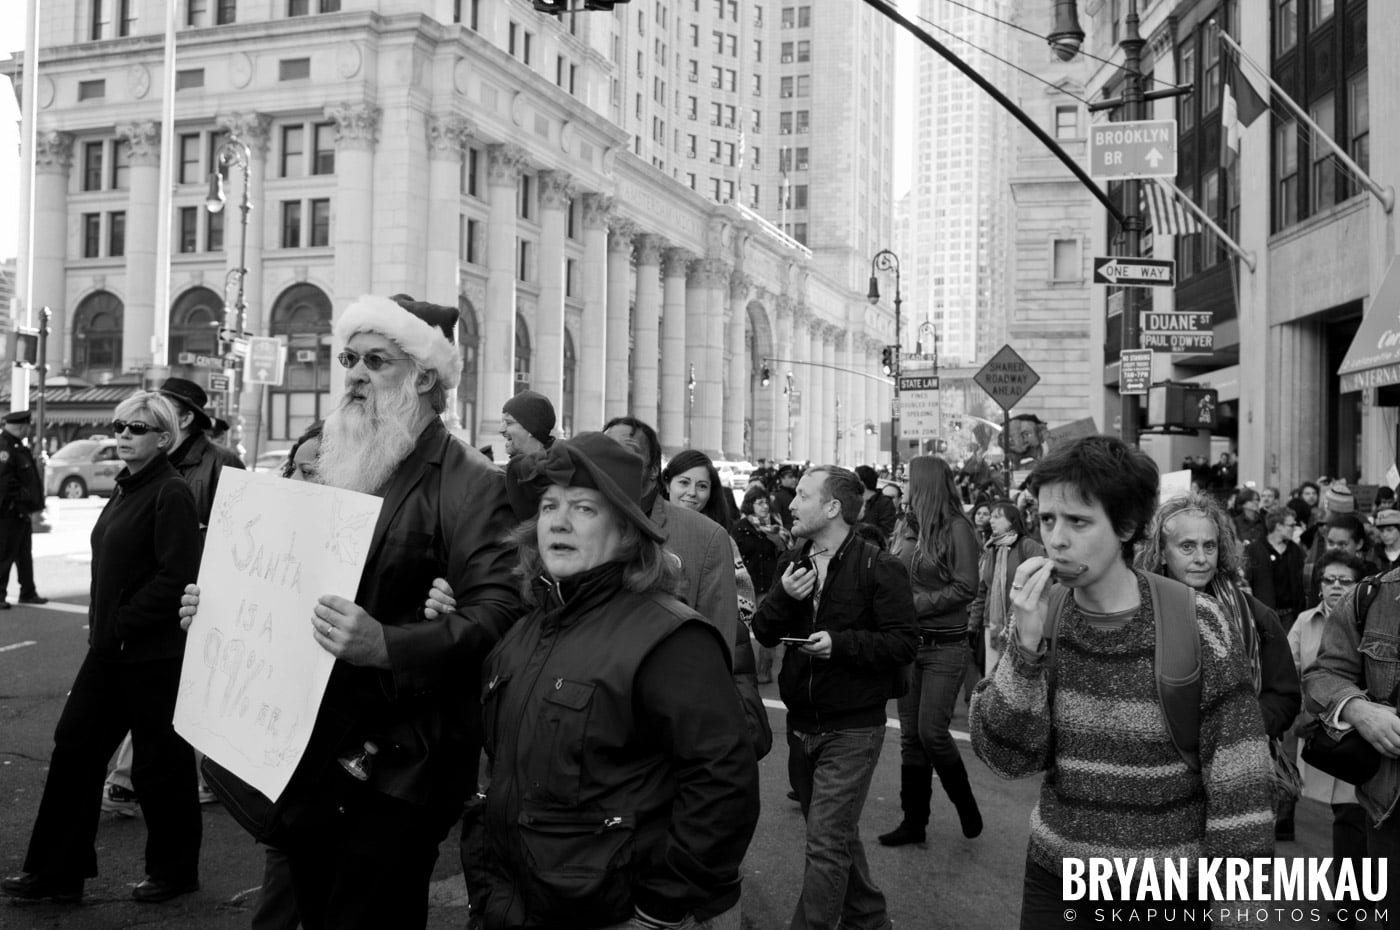 Occupy Wall Street @ Zuccotti Park and Foley Square, NYC - 11.5.11 (25)